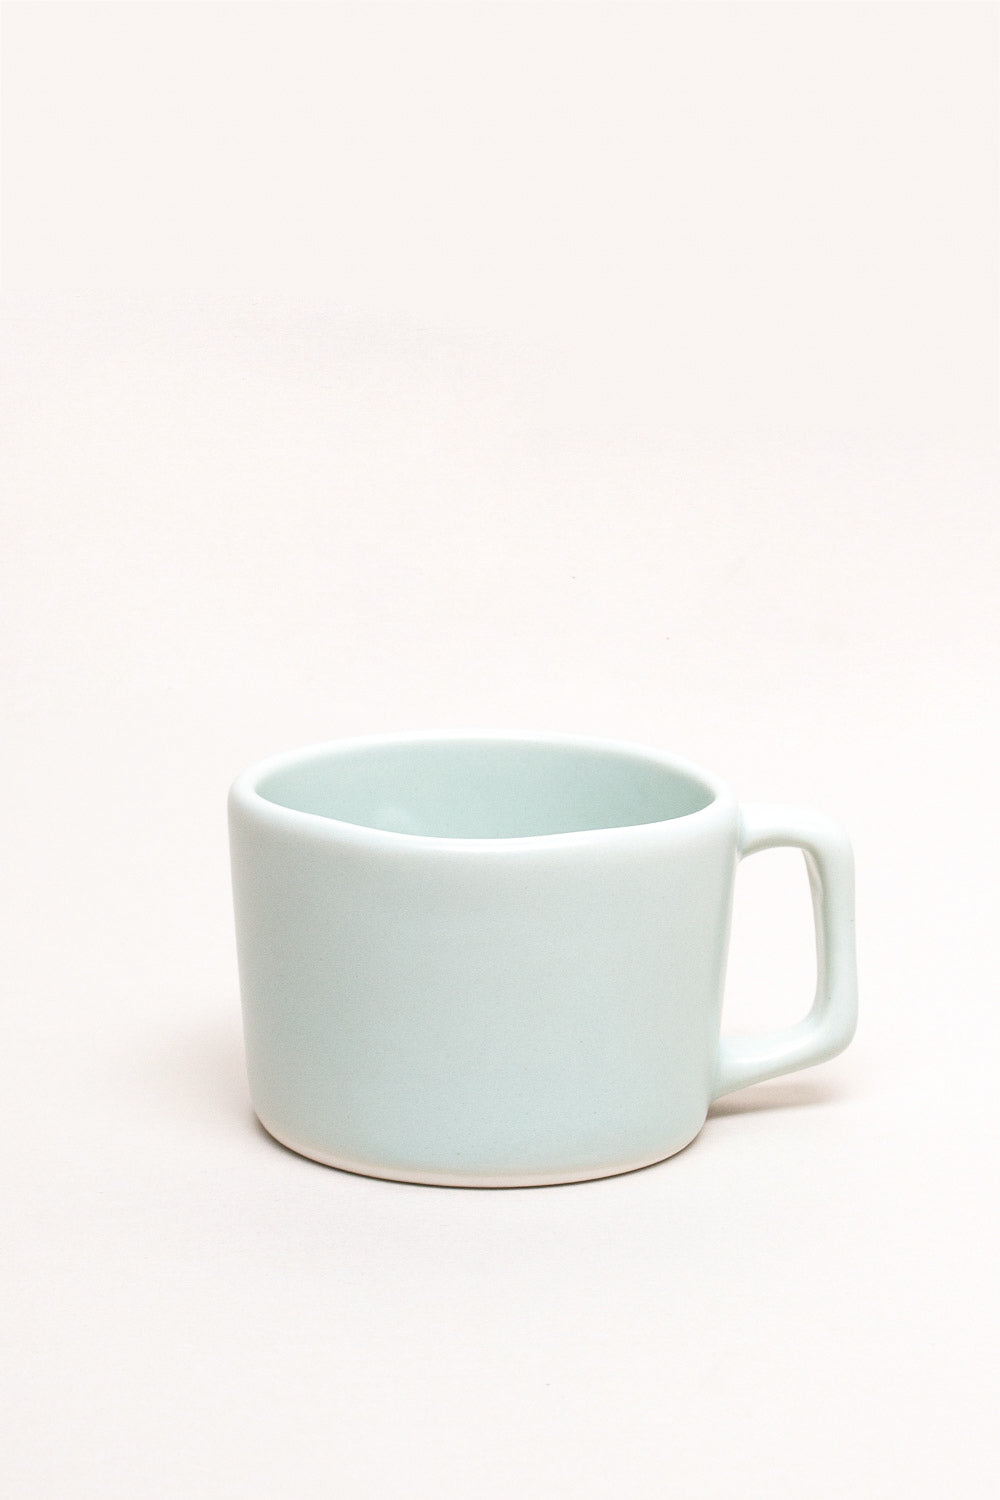 Haand Mug Large in Celadon - Vert & Vogue